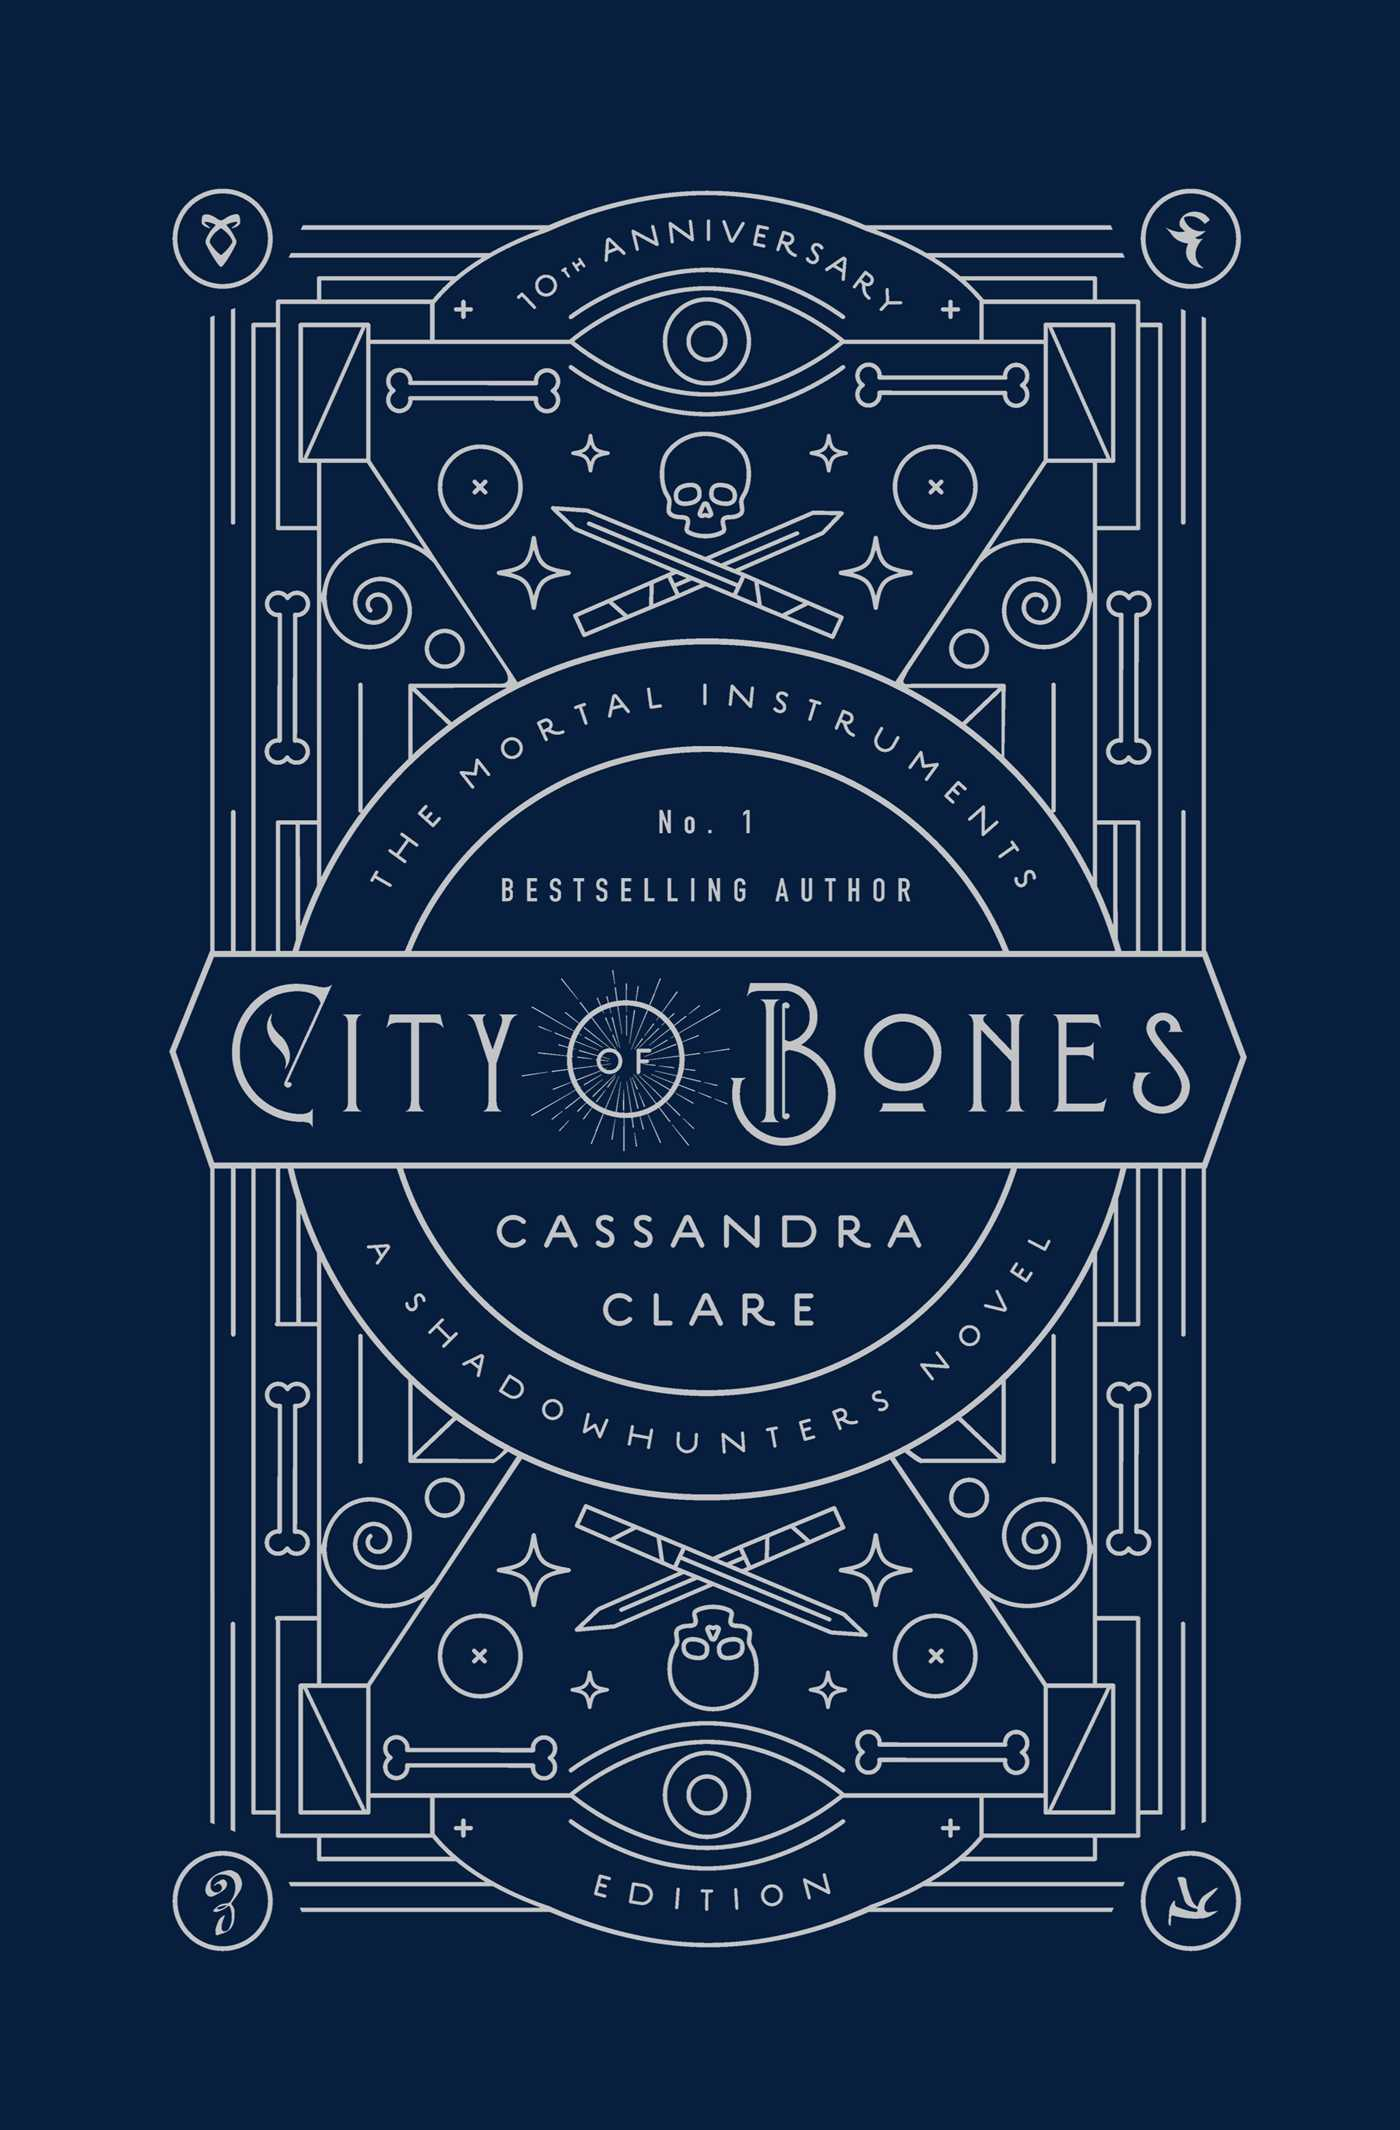 City Of Bones Book By Cassandra Clare Kathleen Jennings